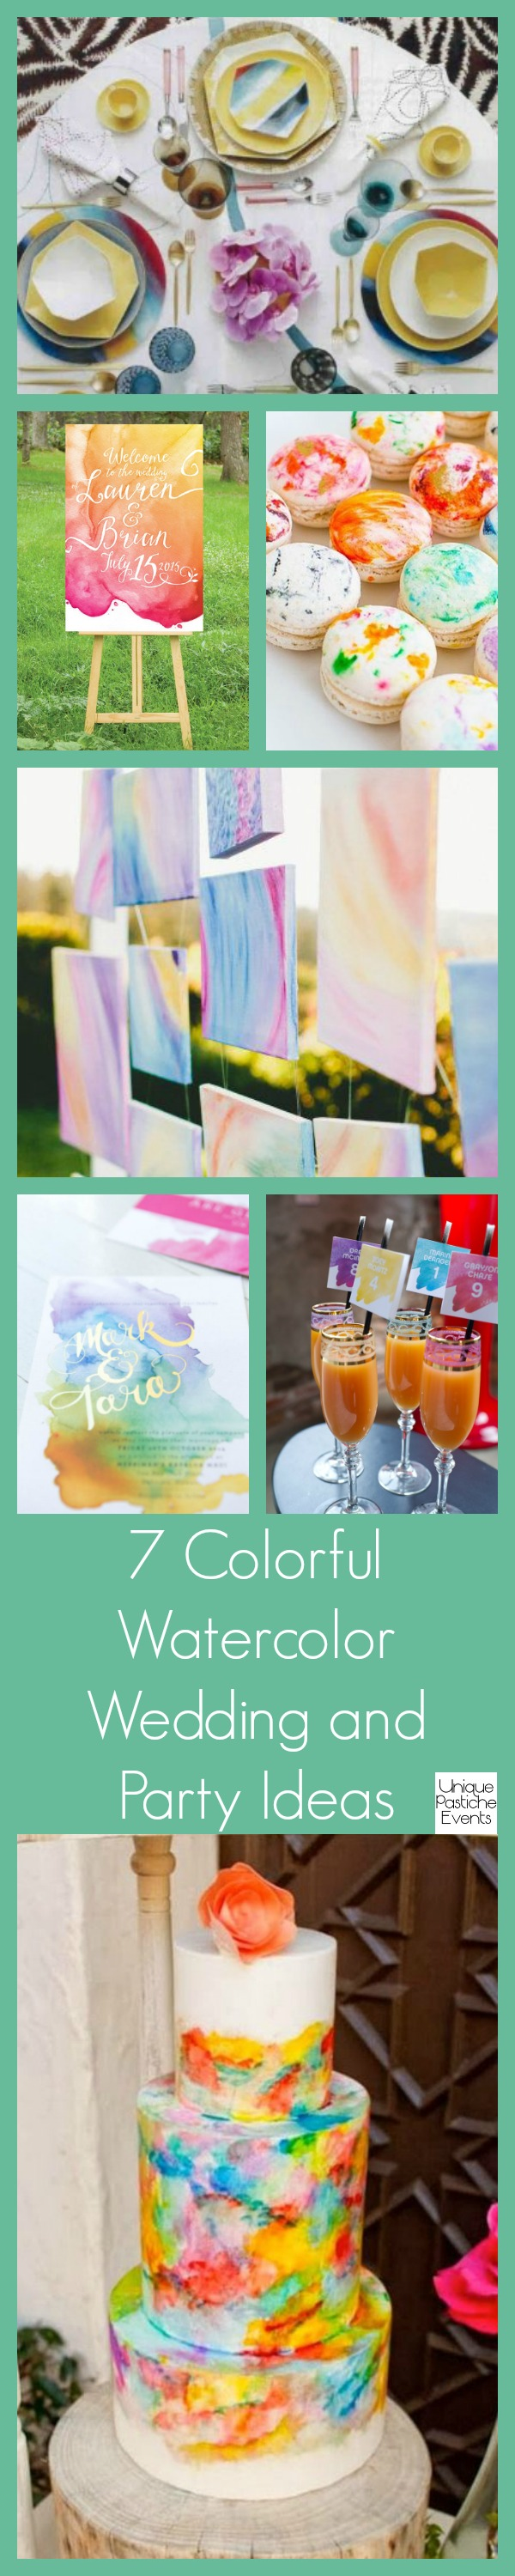 7 Colorful Watercolor Wedding and Party Ideas